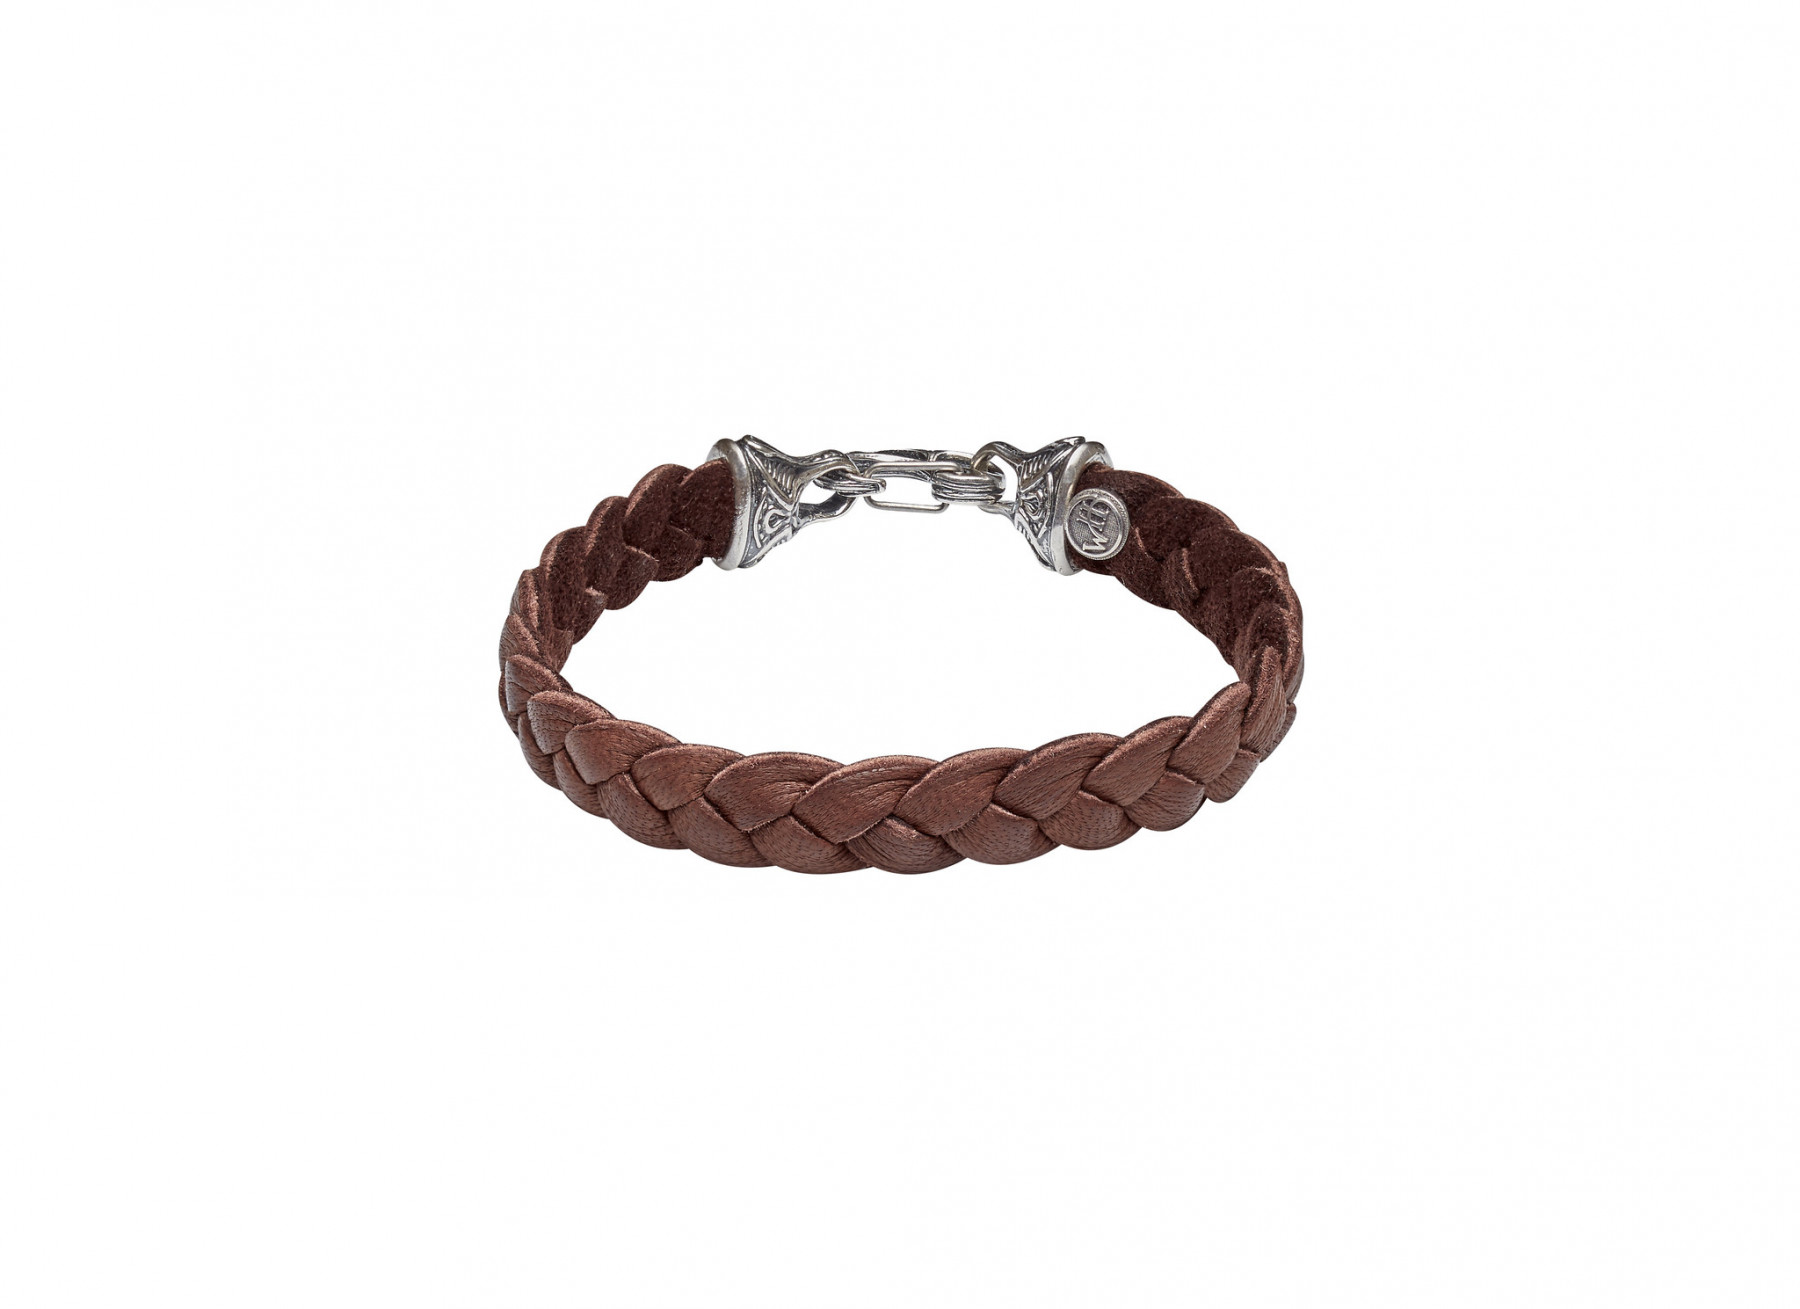 William Henry Hunter Silver Braided Brown Deerskin Bracelet Angle 2 View